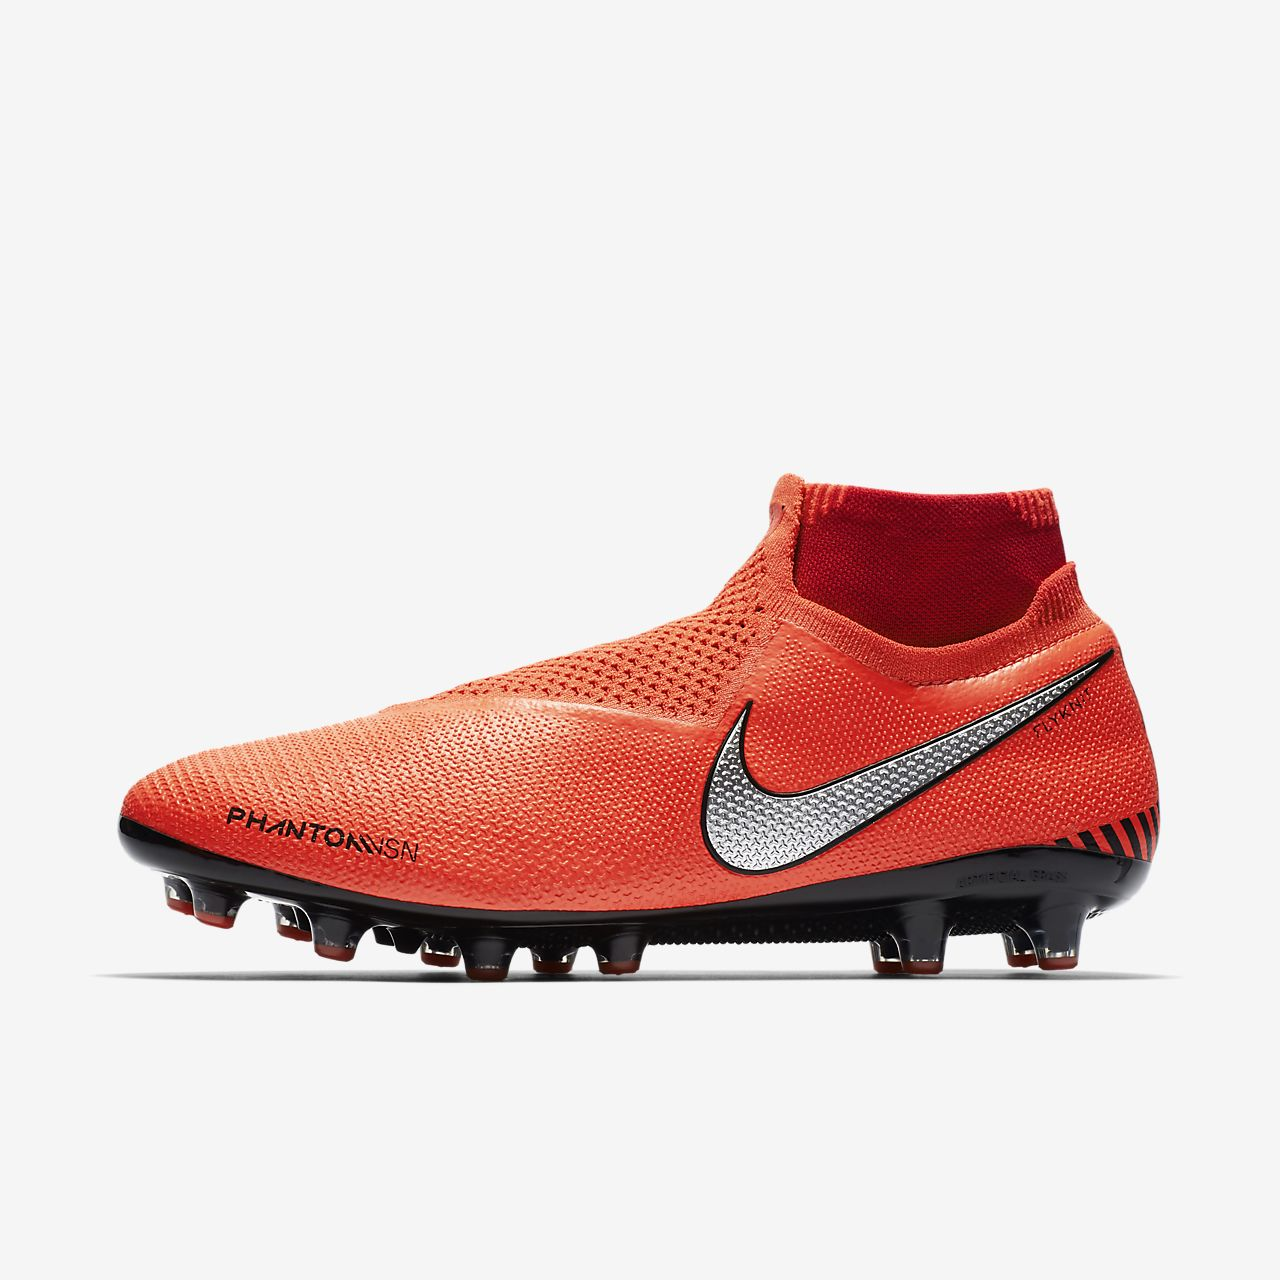 Calzado de fútbol para pasto artificial Nike Phantom Vision Elite Dynamic Fit